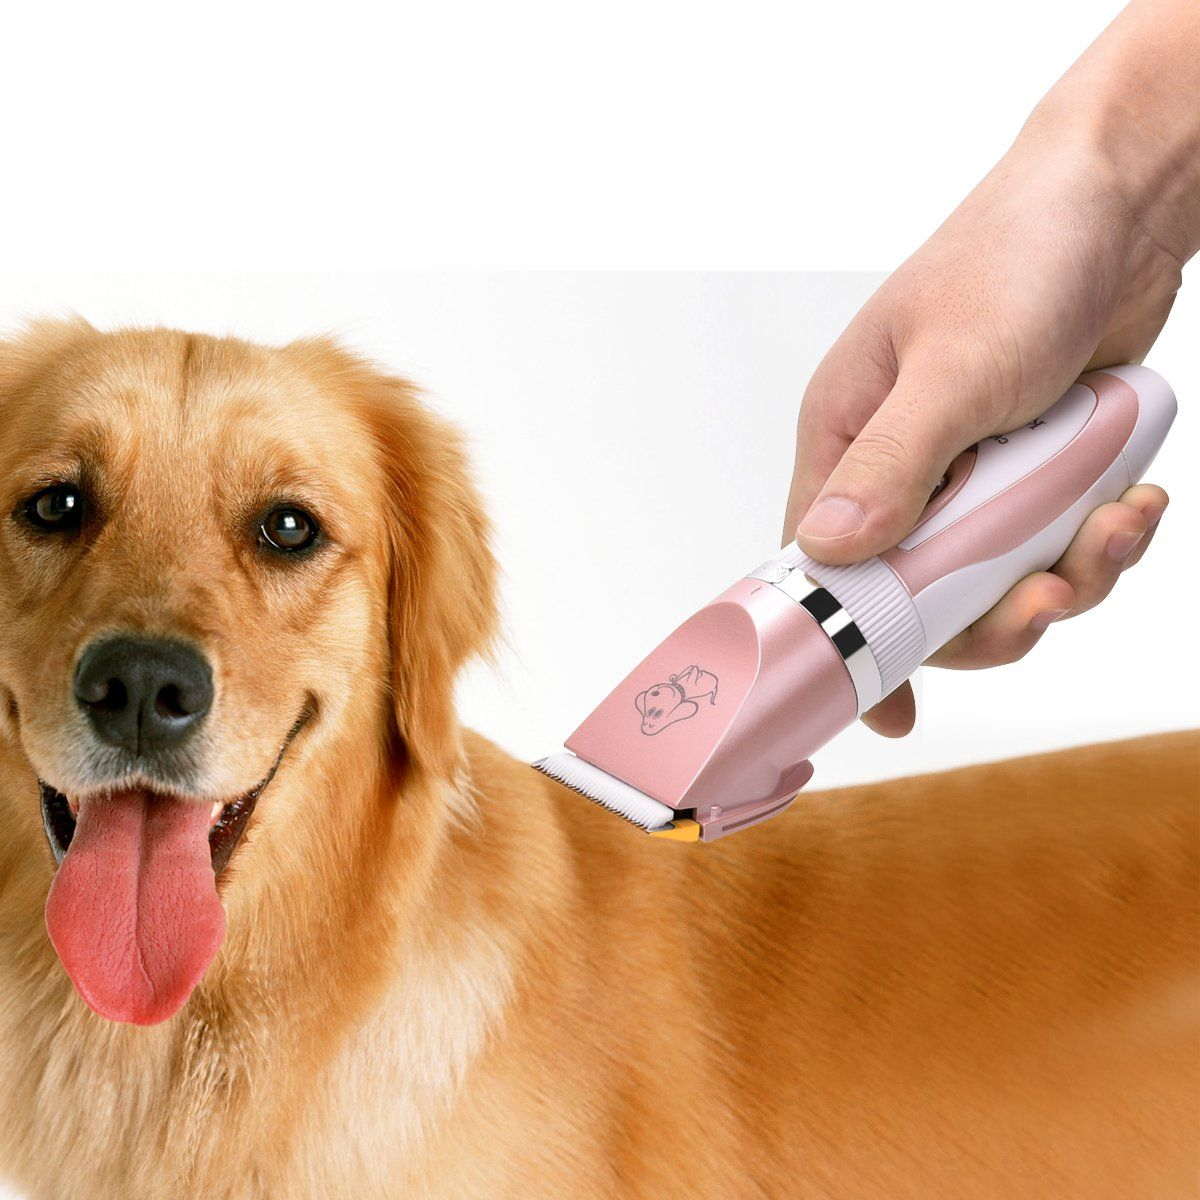 Pet Grooming Clippers Kedda Rechargeable Cordless Dog Grooming